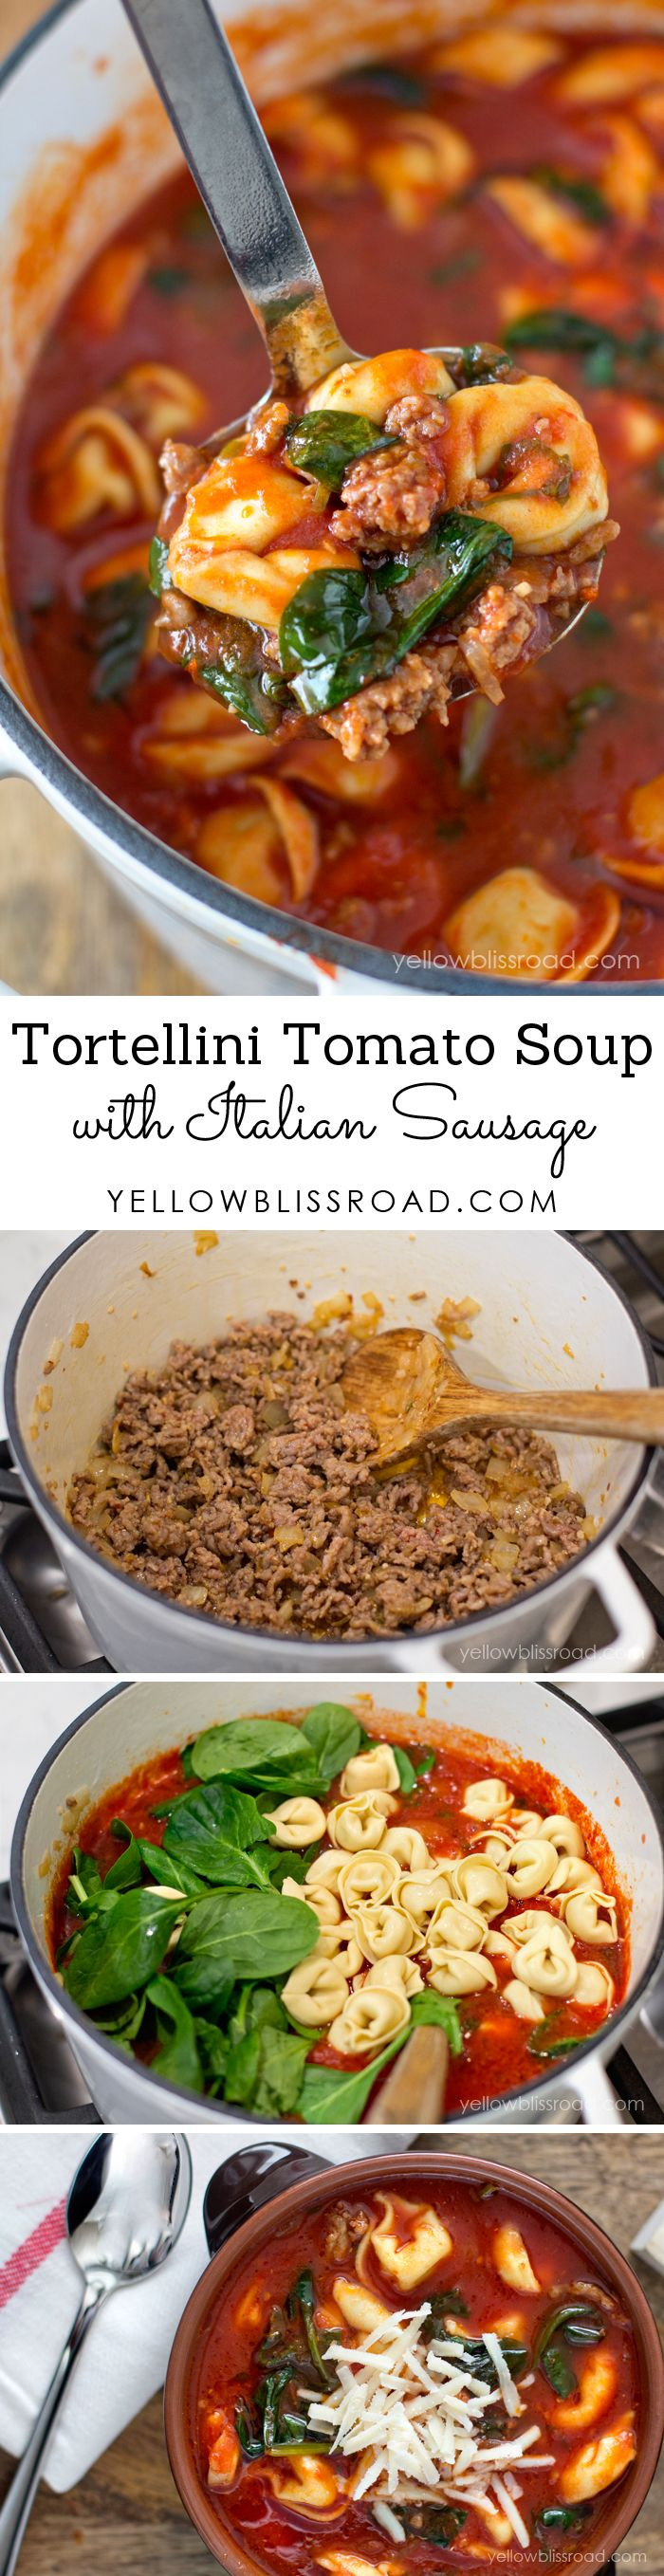 sneaker stores in nyc new york Tortellini Tomato and Spinach Soup with Italian Sausage Recipe